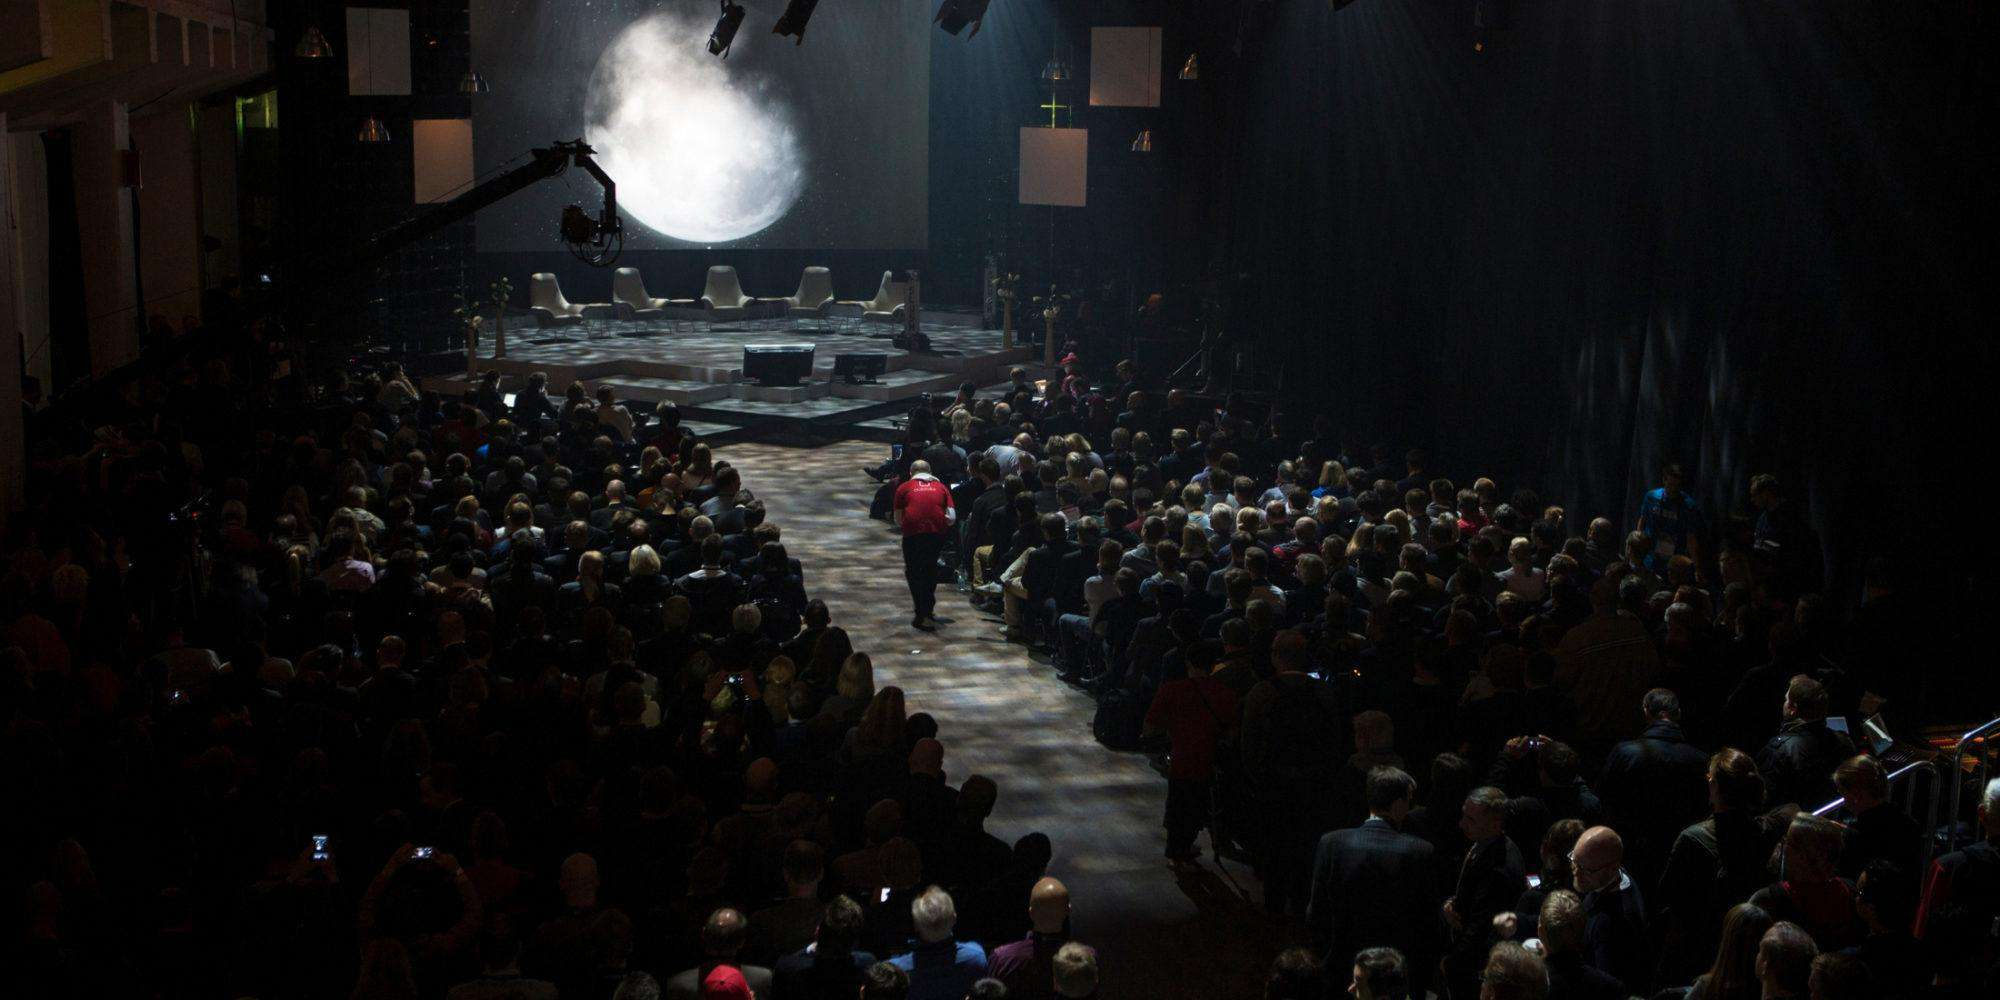 A person walking through a crowd towards a stage